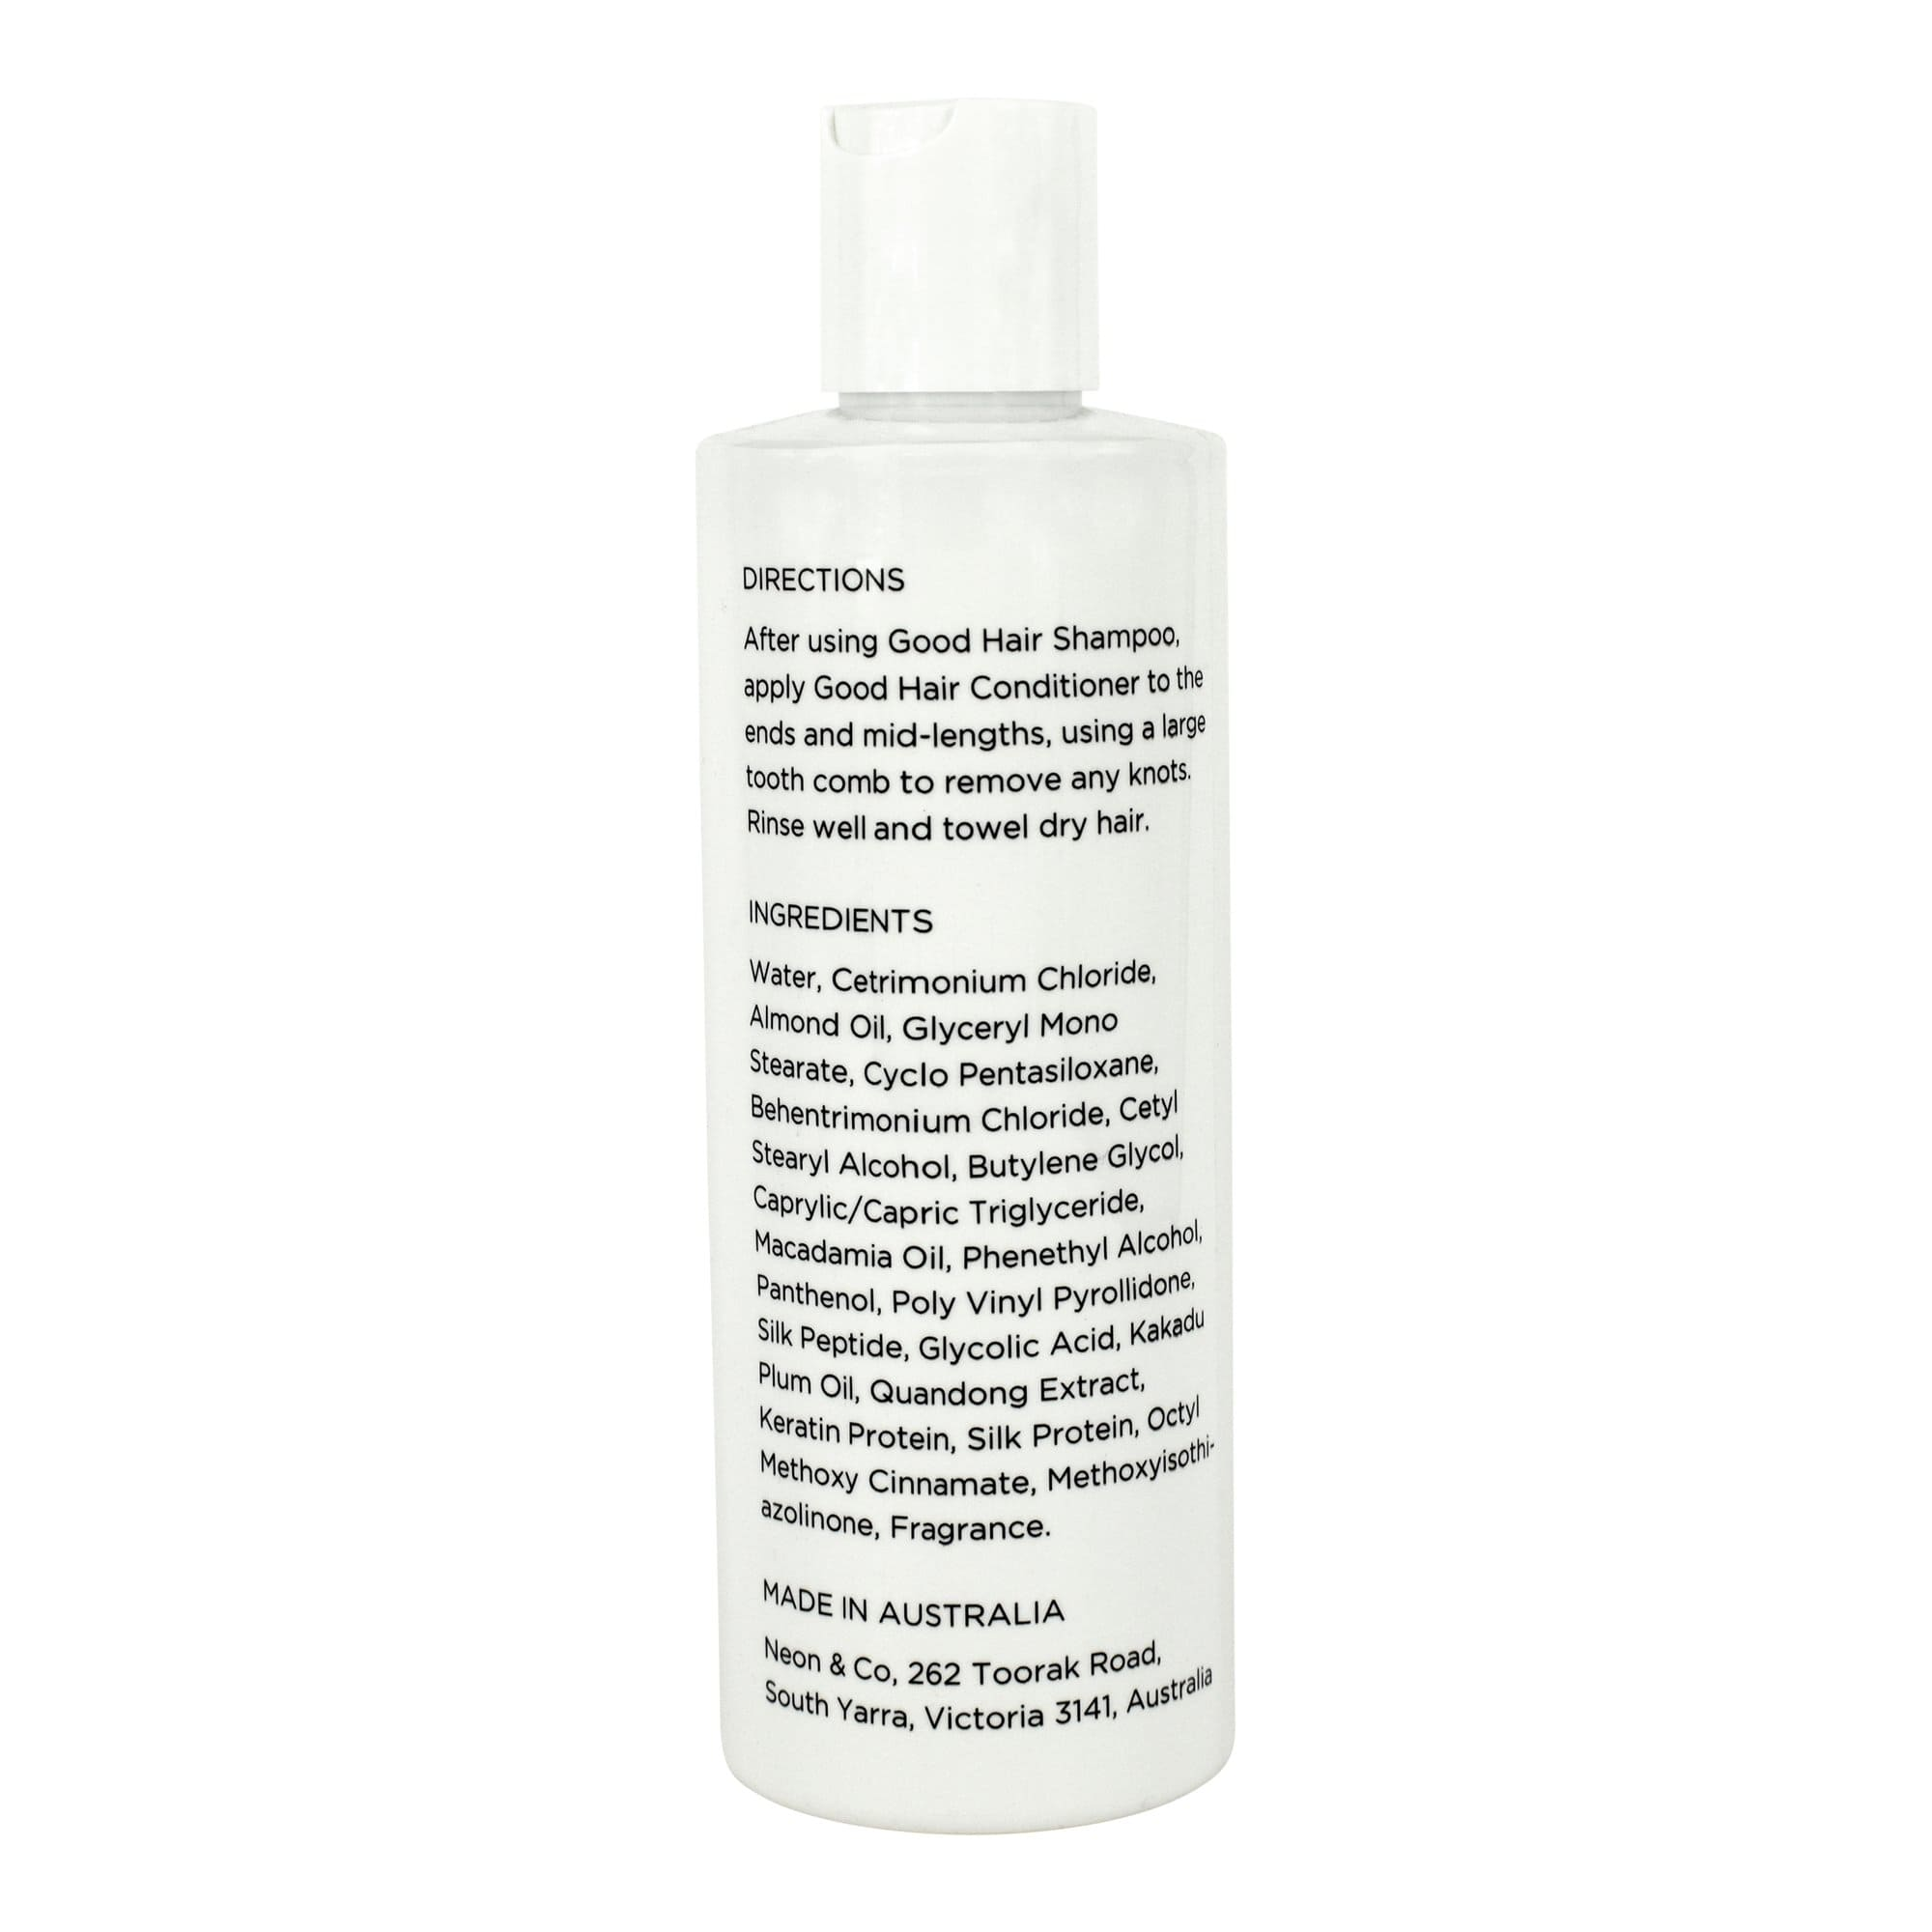 Neon & Co. Good Hair Conditioner 250ml